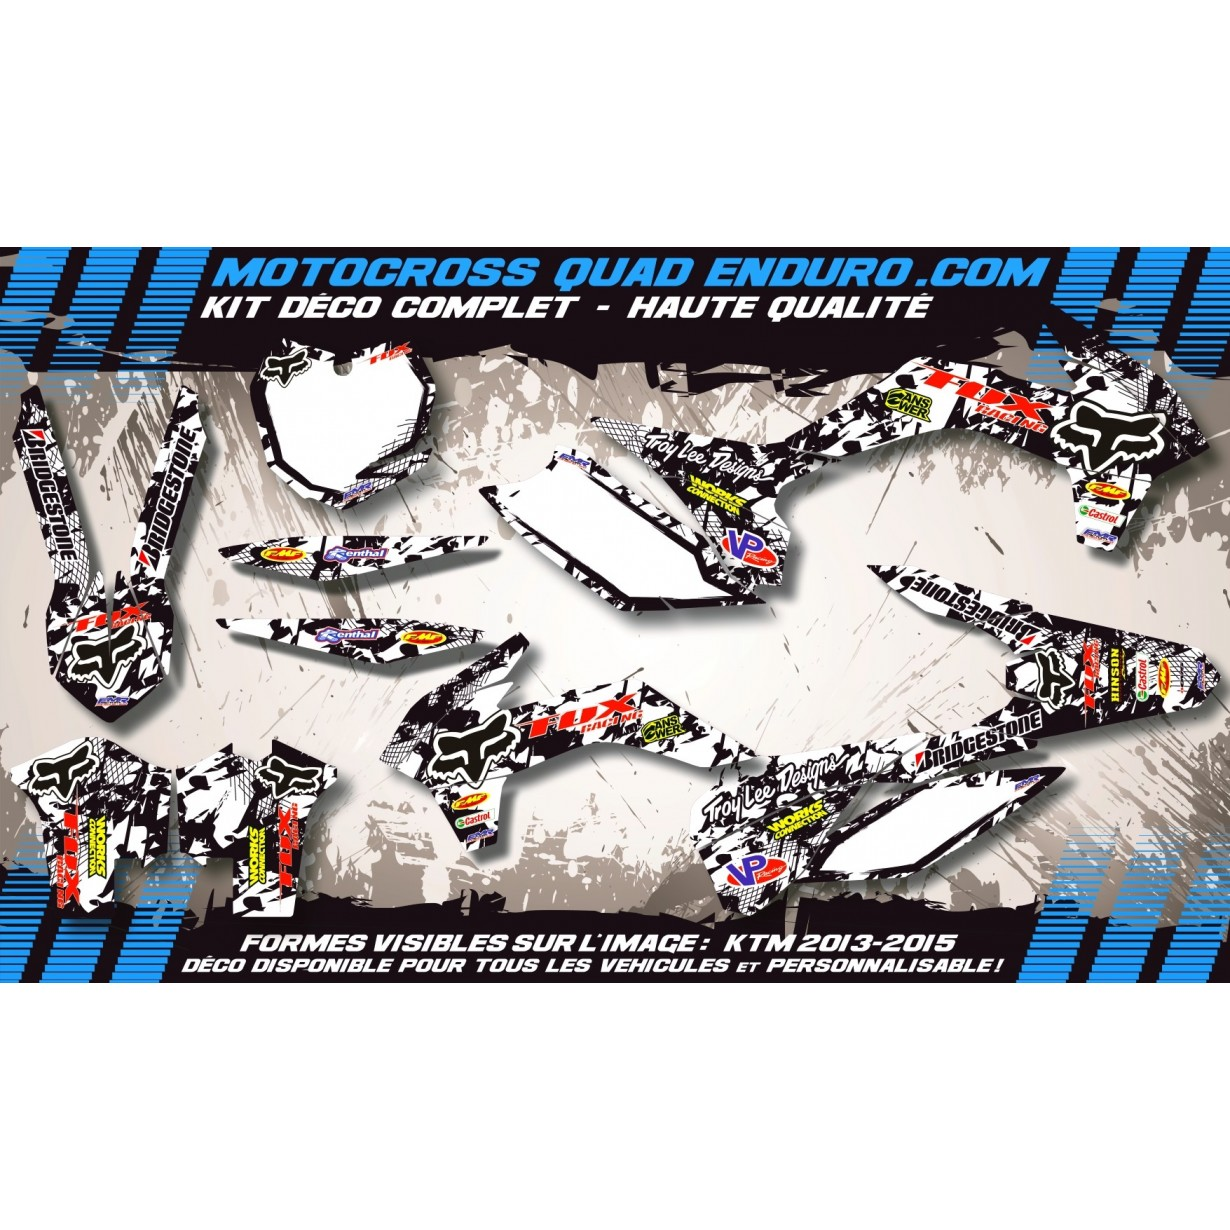 KIT DÉCO Perso 660 RAPTOR Quad FOX MA9F